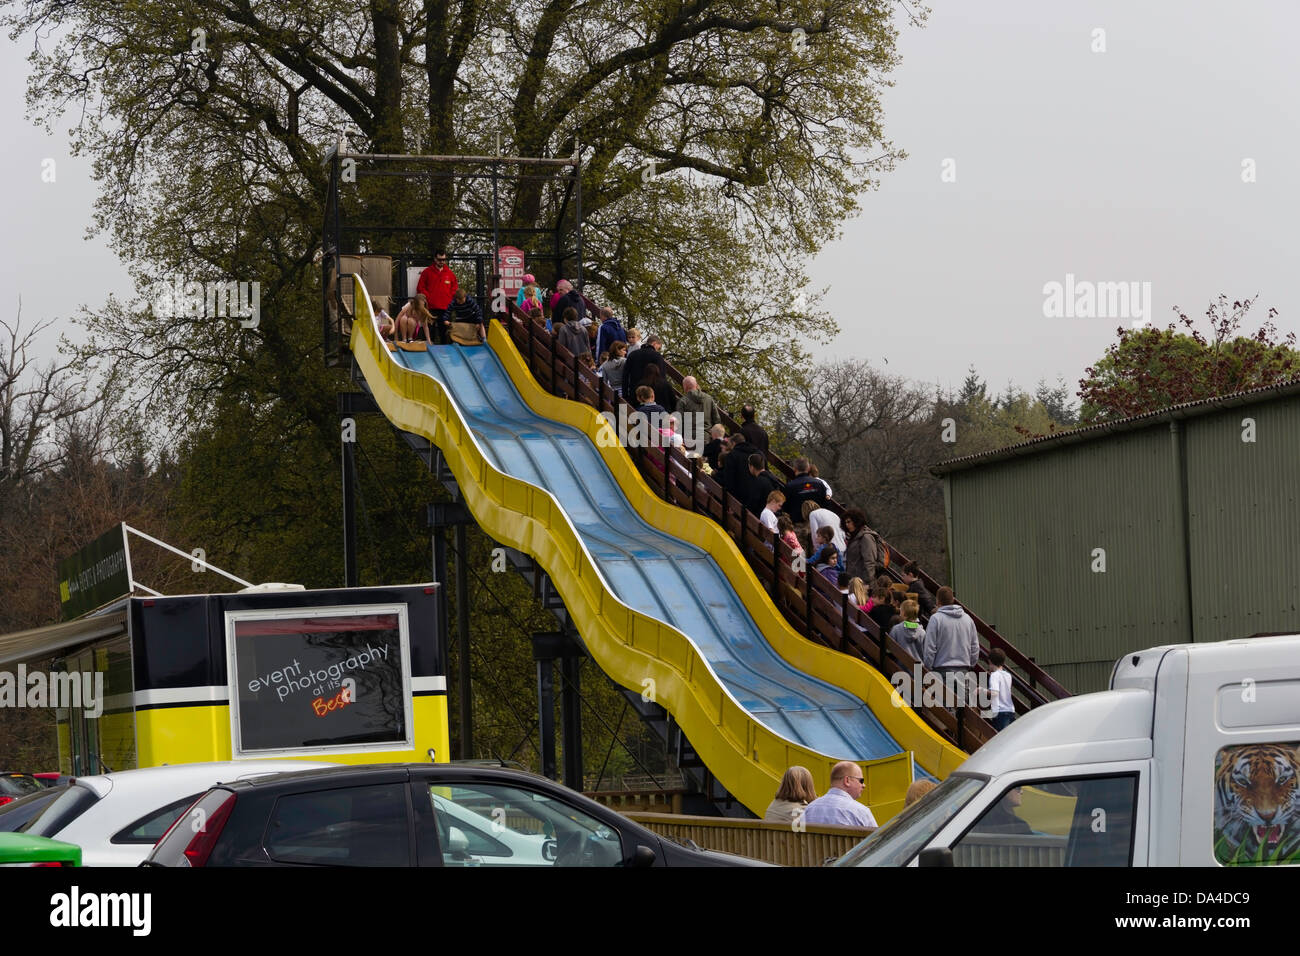 a slide with kids and parked cars inside the blair drummond safari